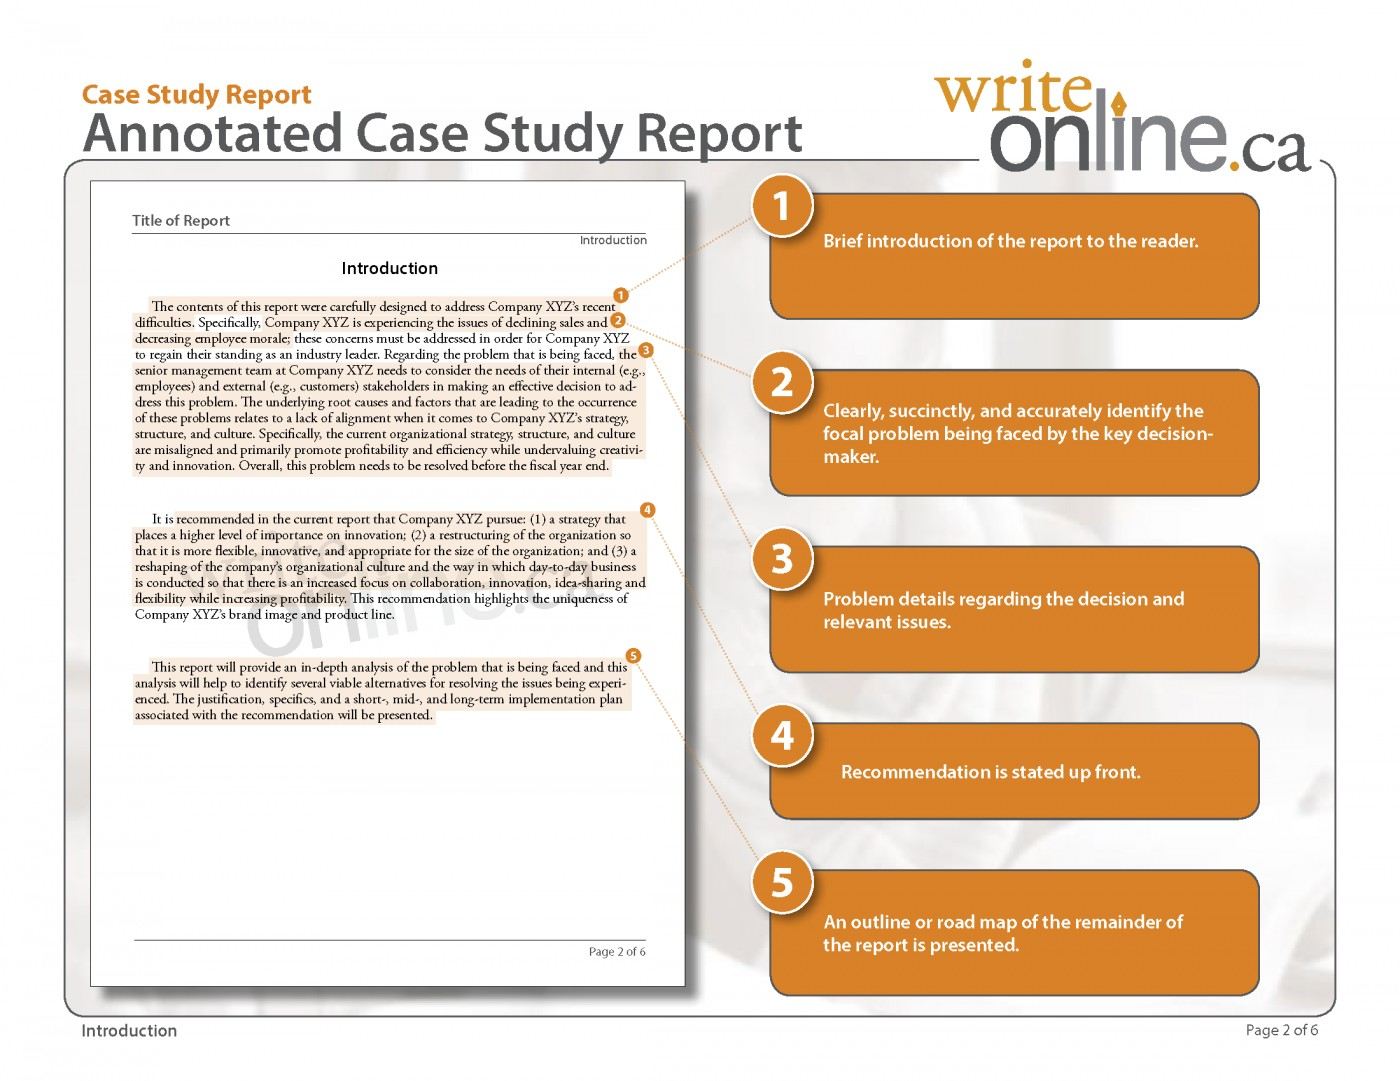 009 Research Paper Casestudy Annotatedfull Page 2 Component Of Archaicawful Pdf Parts Chapter 1 1-5 1400